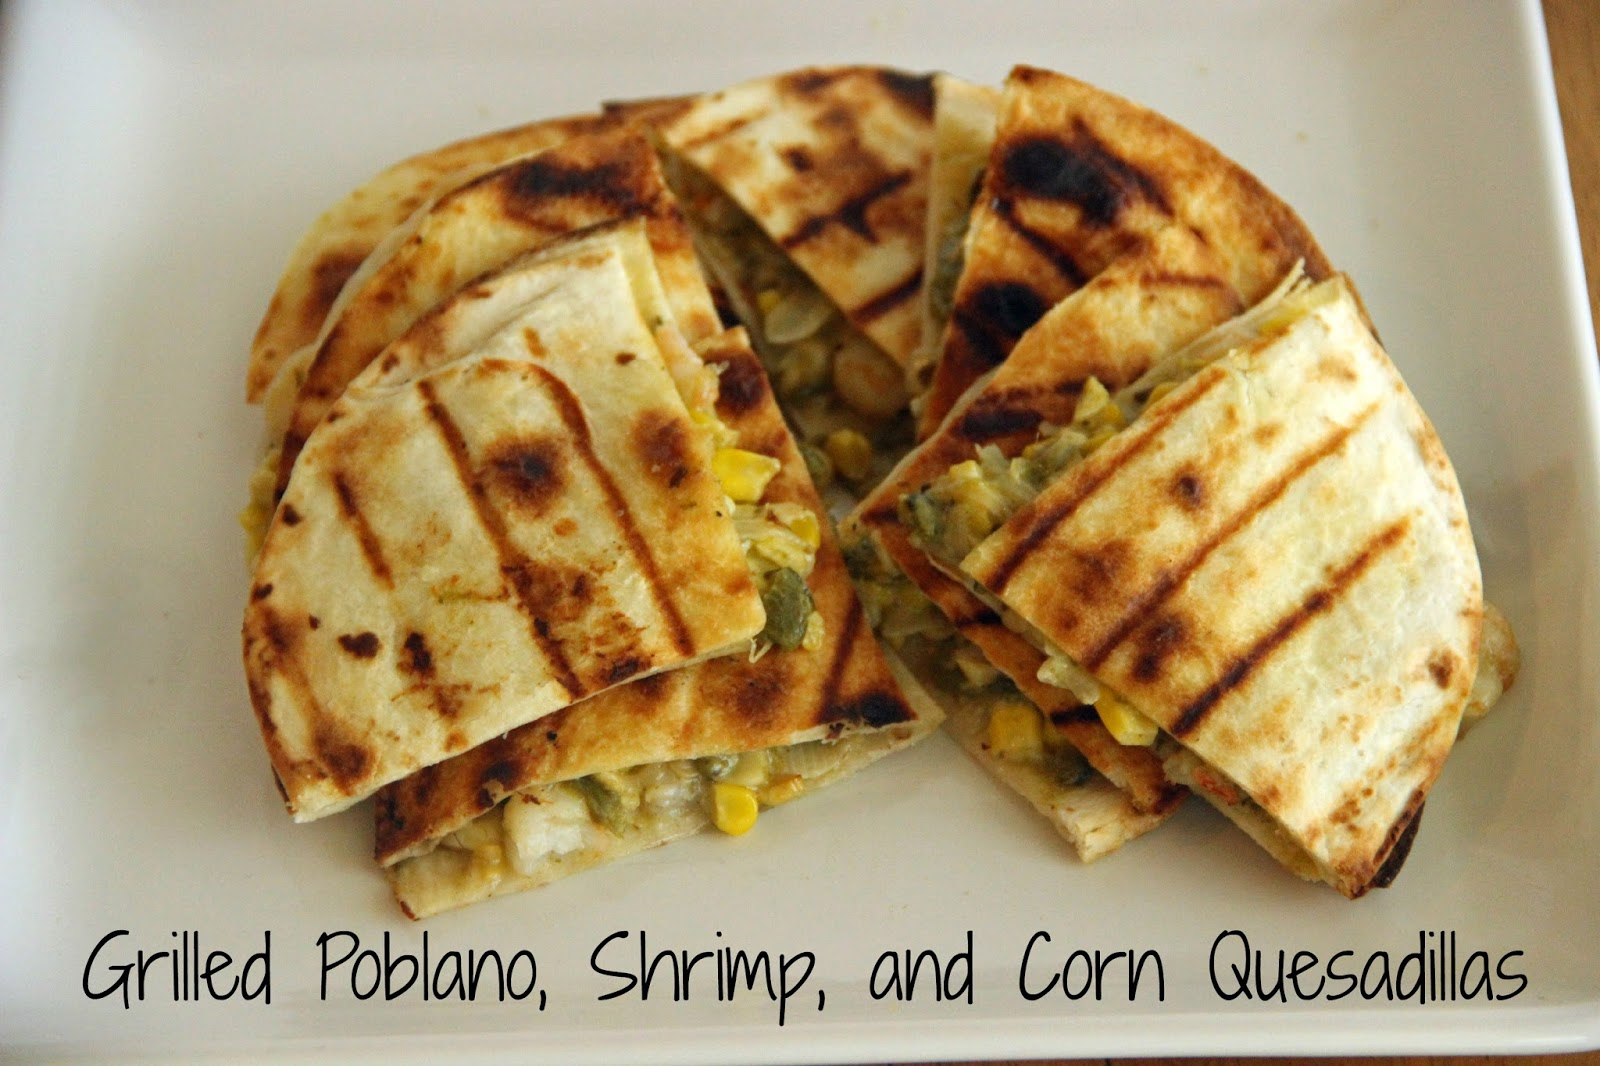 Grilled Poblano, Shrimp, and Corn Quesadillas